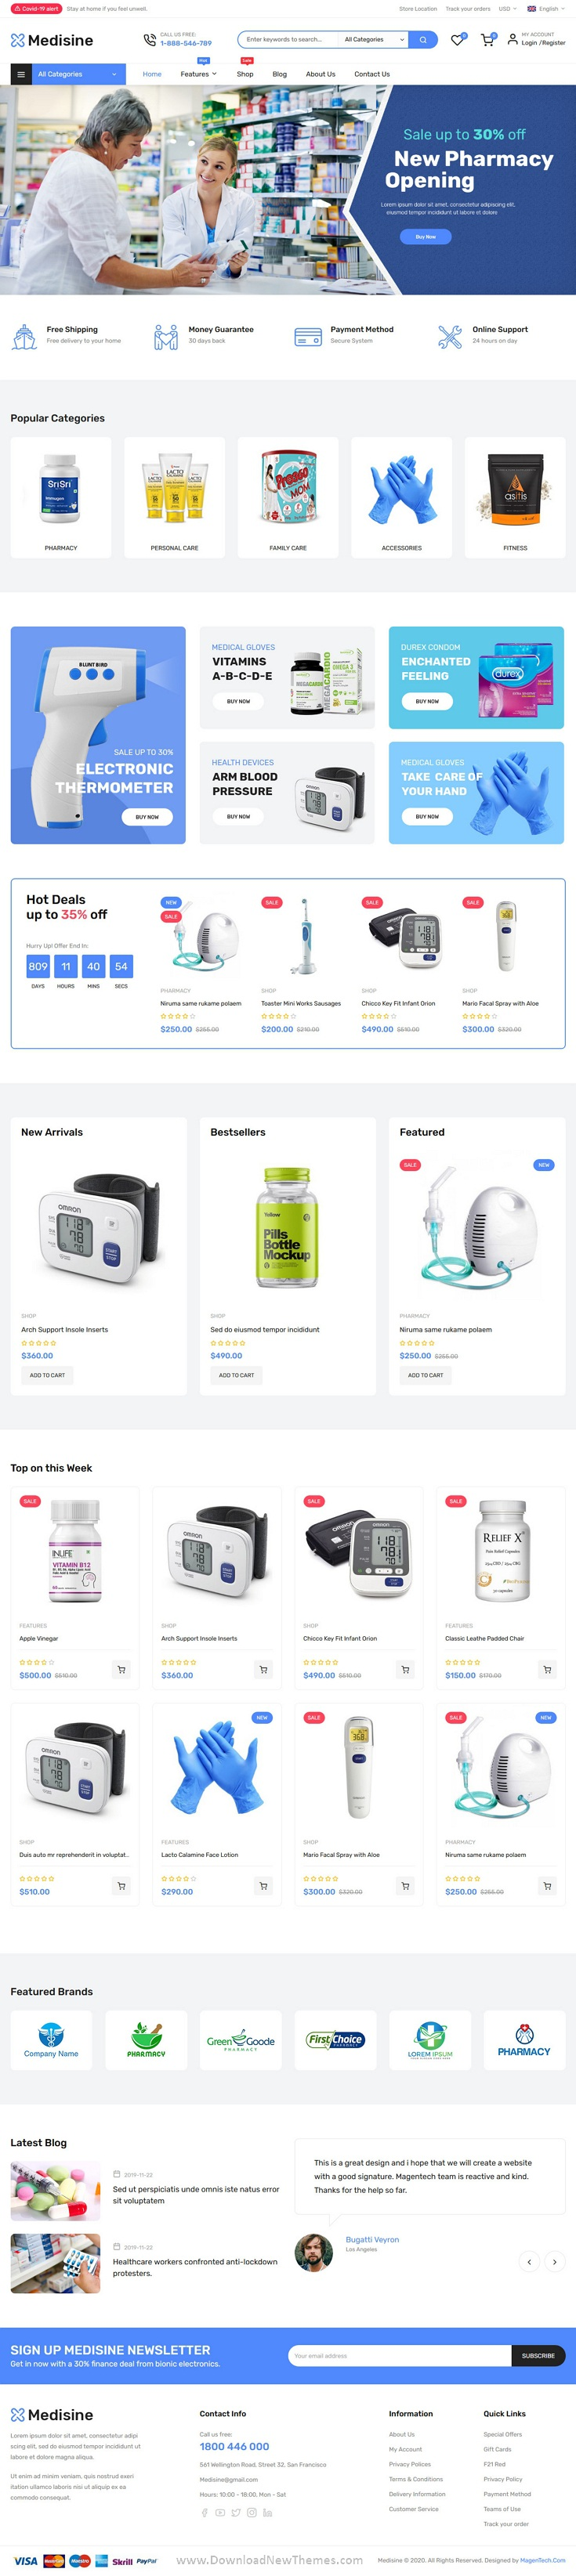 Medisine Drug and Medical Store Magento Theme